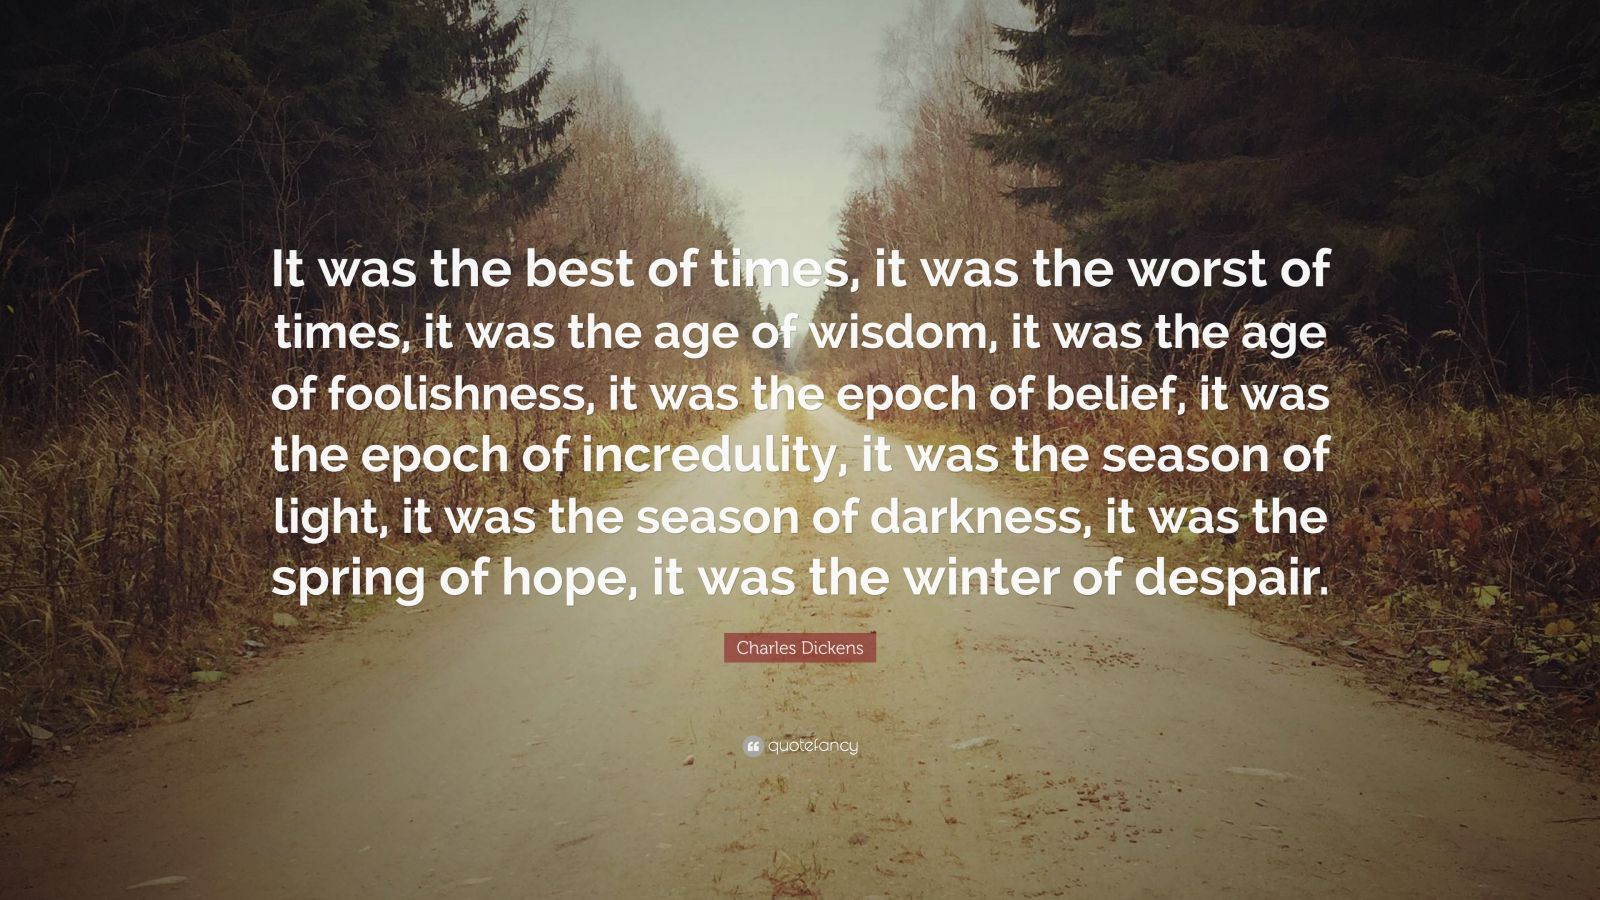 "Charles Dickens Quote: ""It was the best of times, it was the worst of times, it was the age of wisdom, it was the age of foolishness, it was the epoch of belief, it was the epoch of incredulity, it was the season of light, it was the season of darkness, it was the spring of hope, it was the winter of despair."""